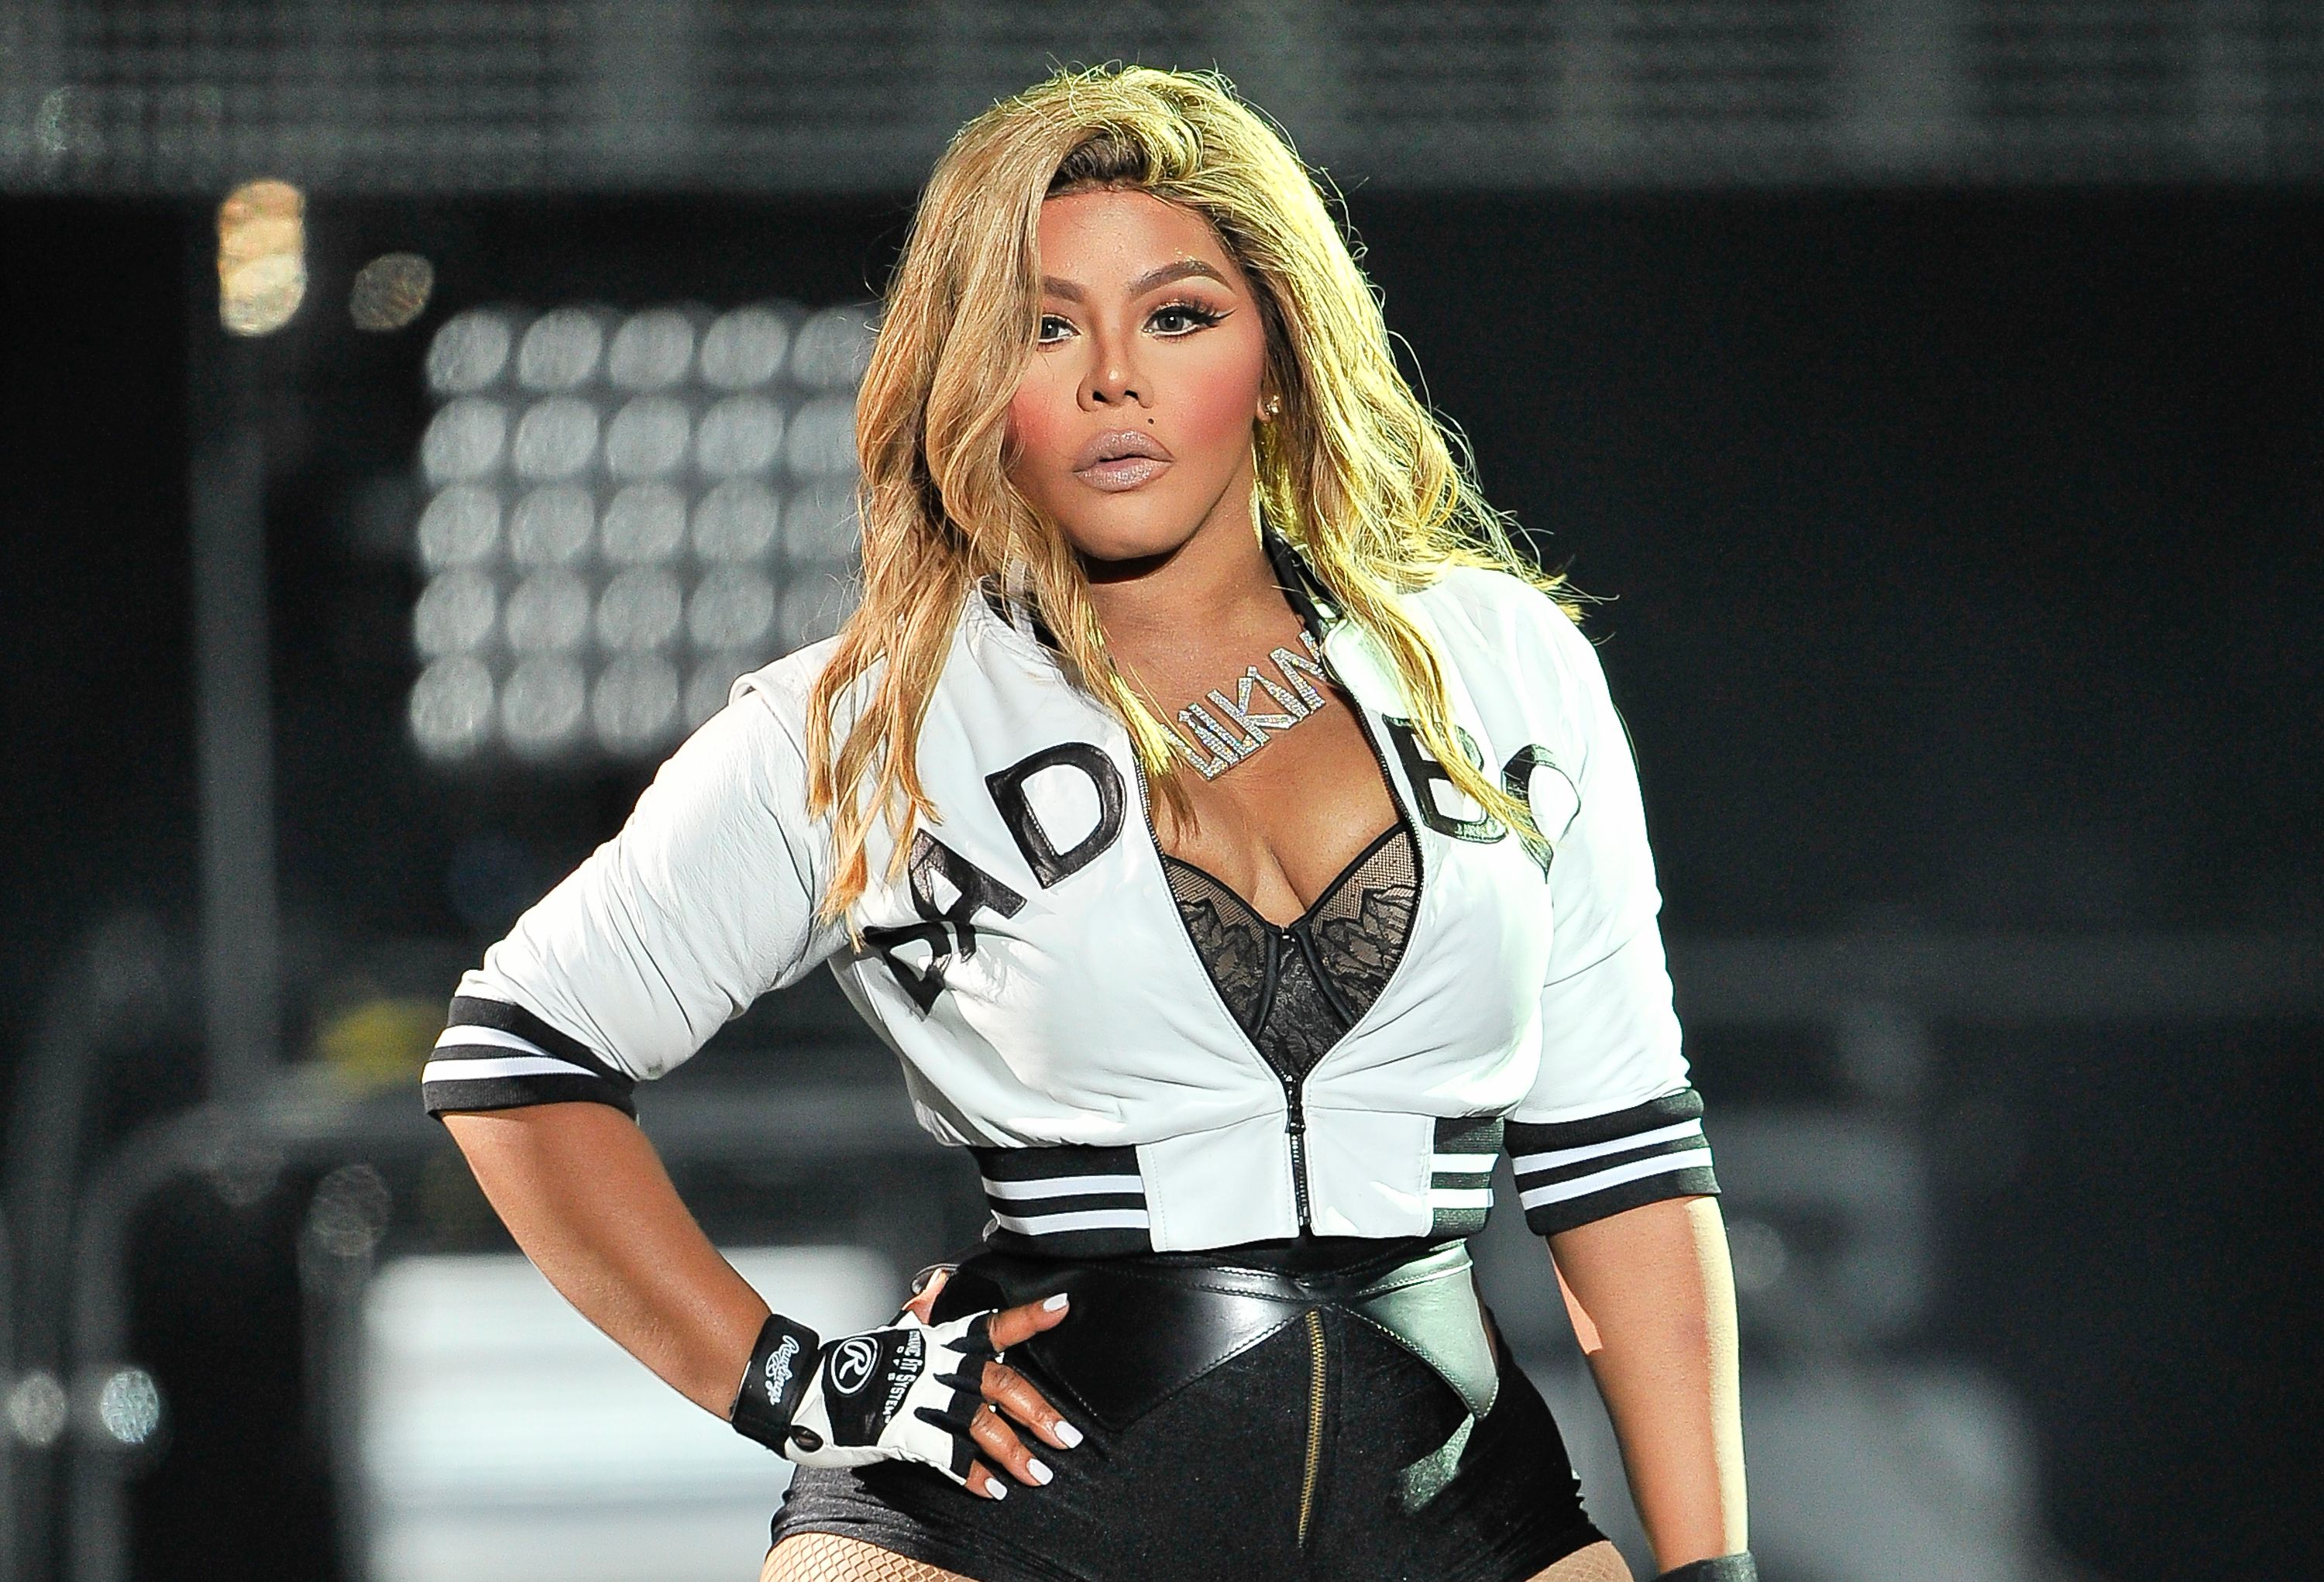 Lil' Kim performing at the Bad Boy Family Reunion Tour in 2016 in Oakland, California | Source: Getty Images